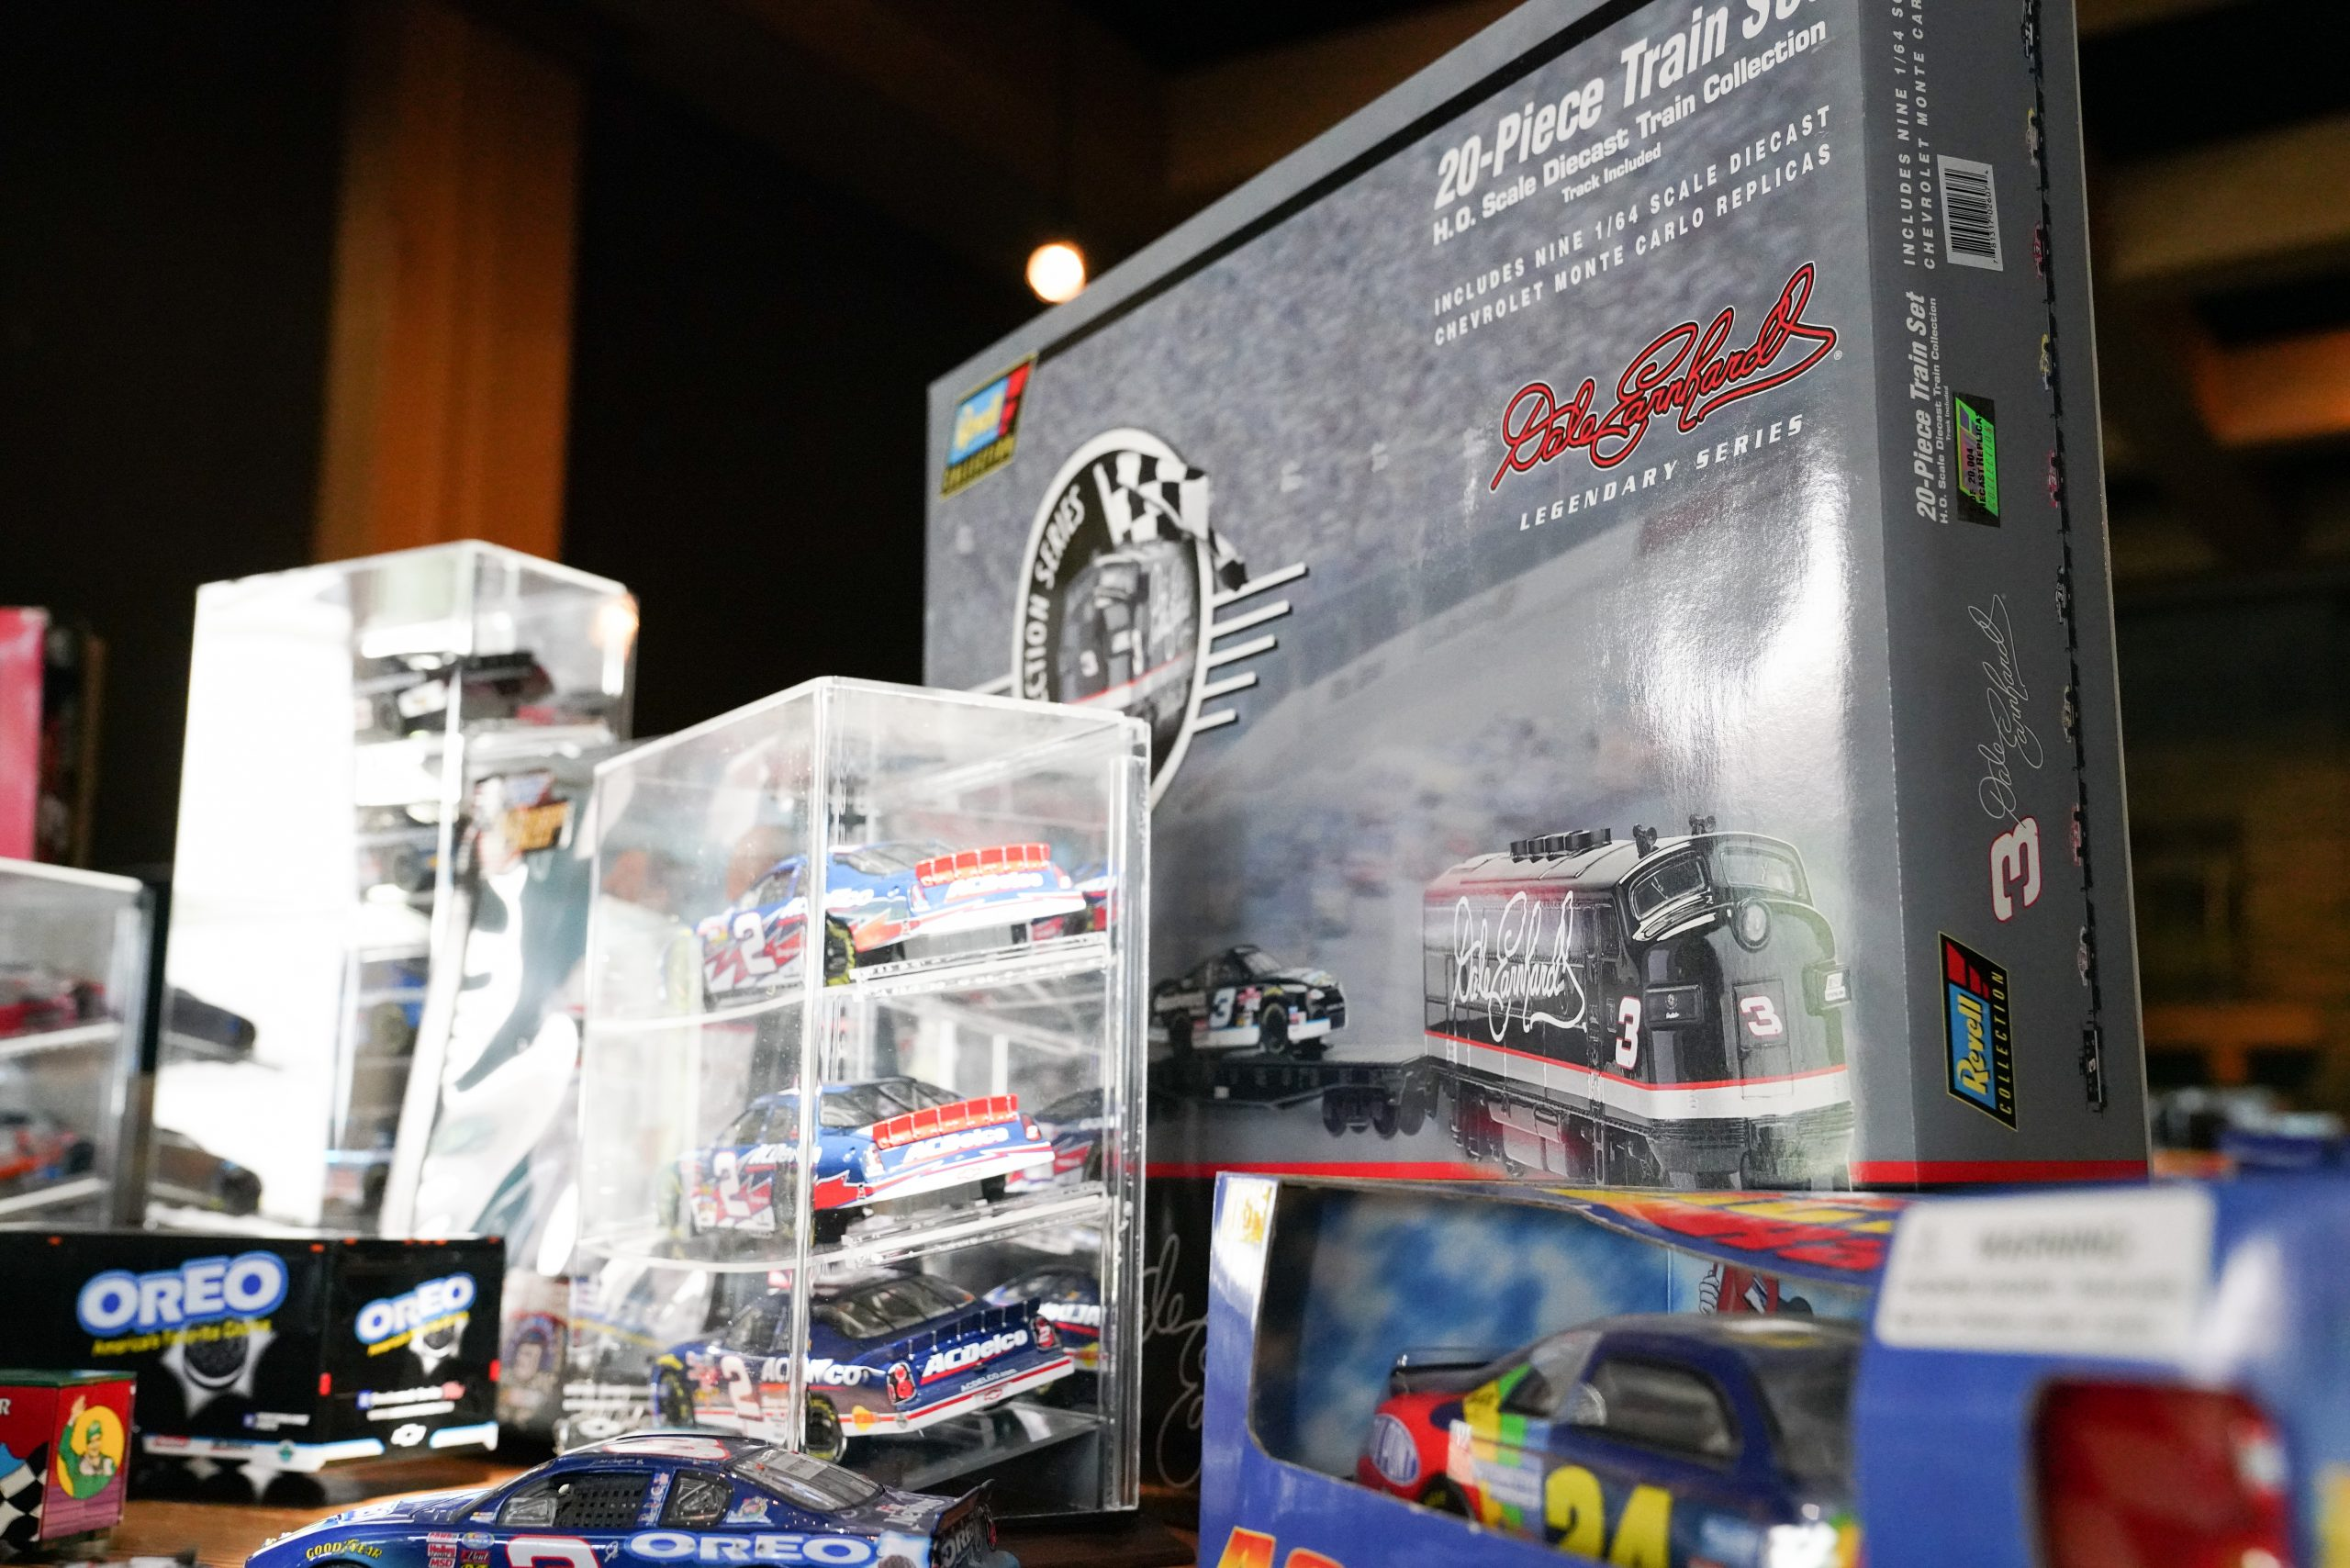 Richard Childress Launches Personal Memorabilia Auction And Sale To Assist Covid 19 Relief Efforts Richard Childress Racing